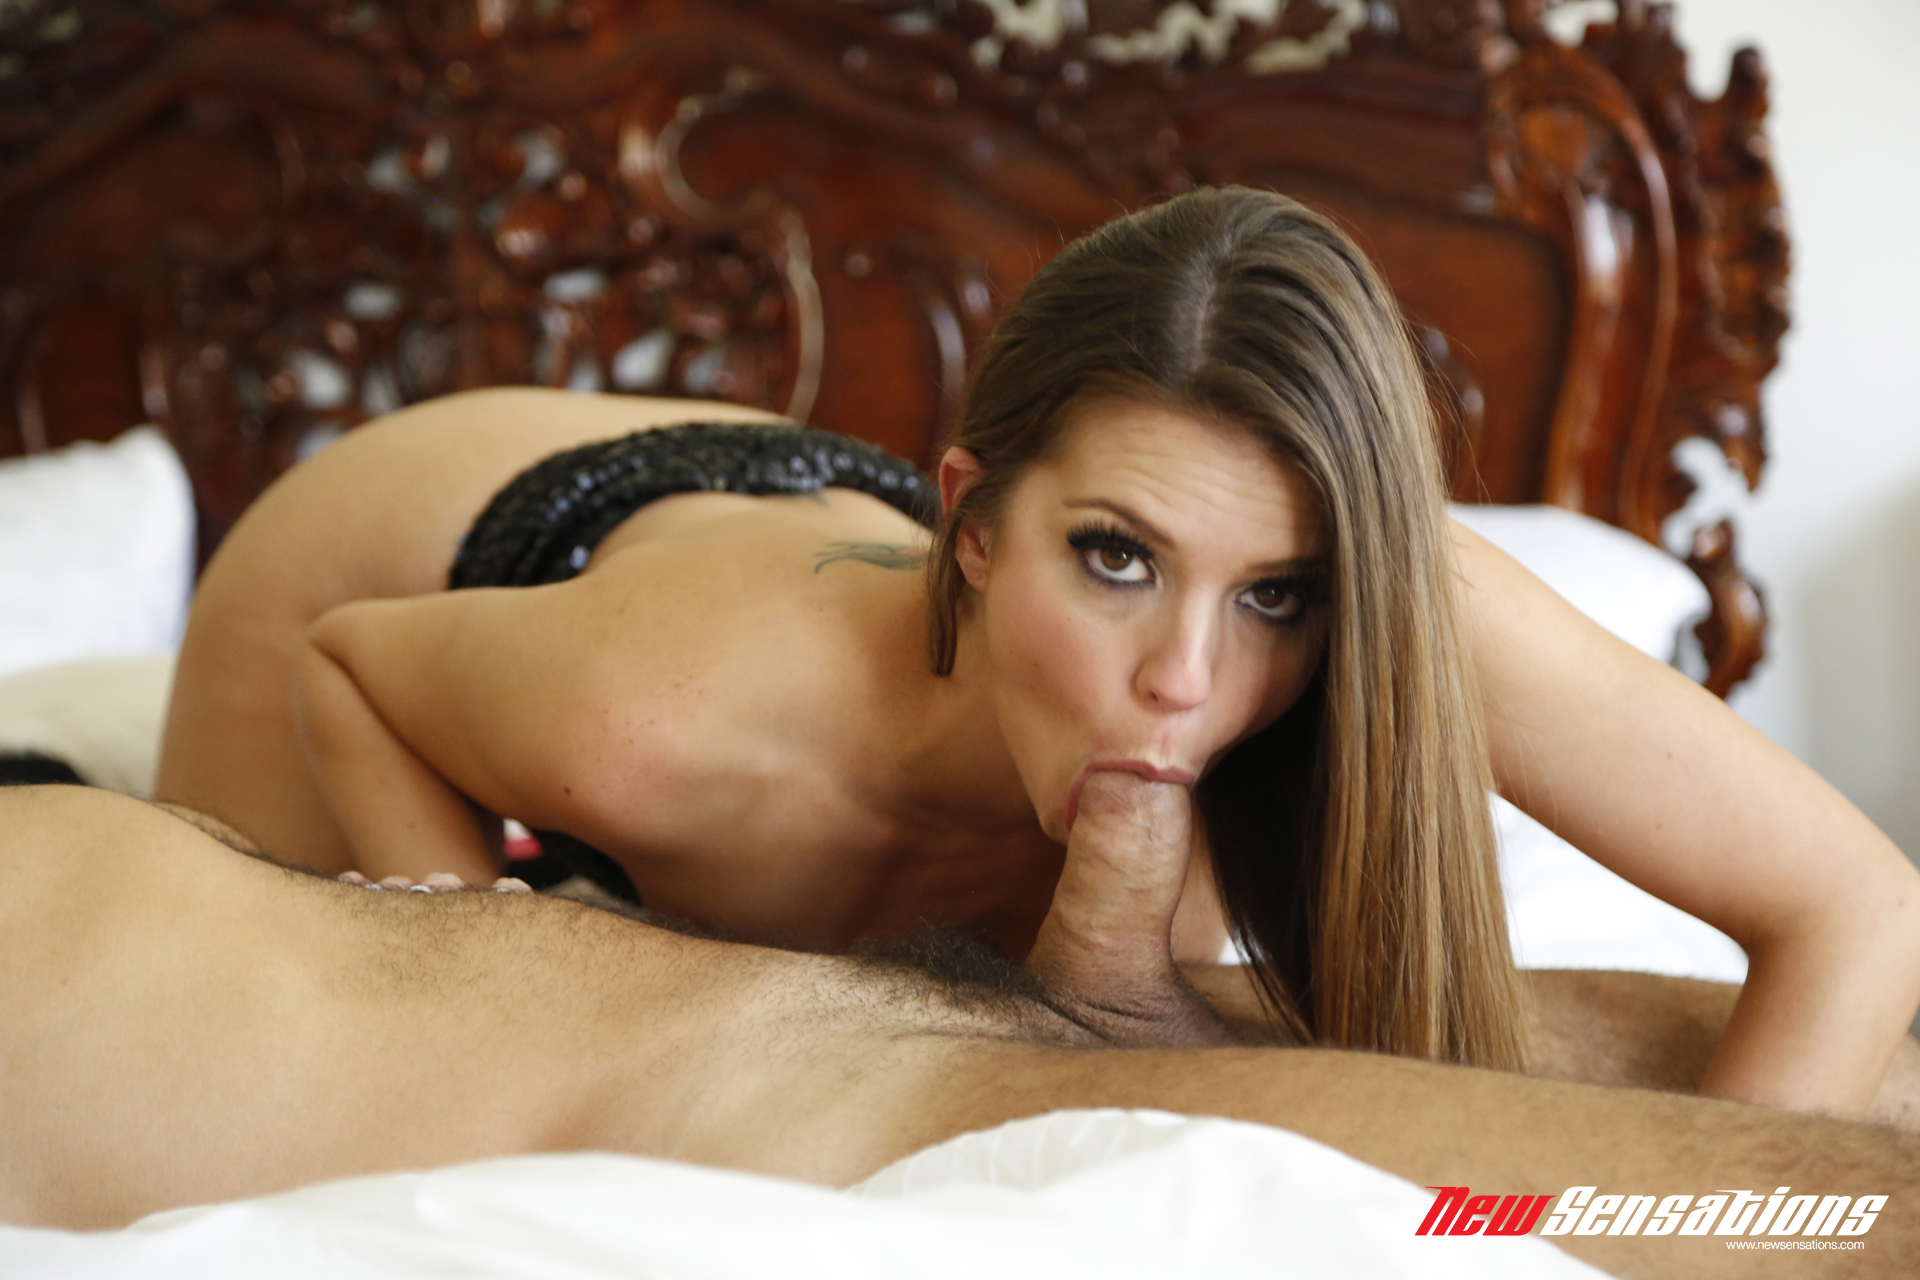 Forbidden sex in the yeshiva arab israel jew amateur adult porn fuck doctor - 1 part 3